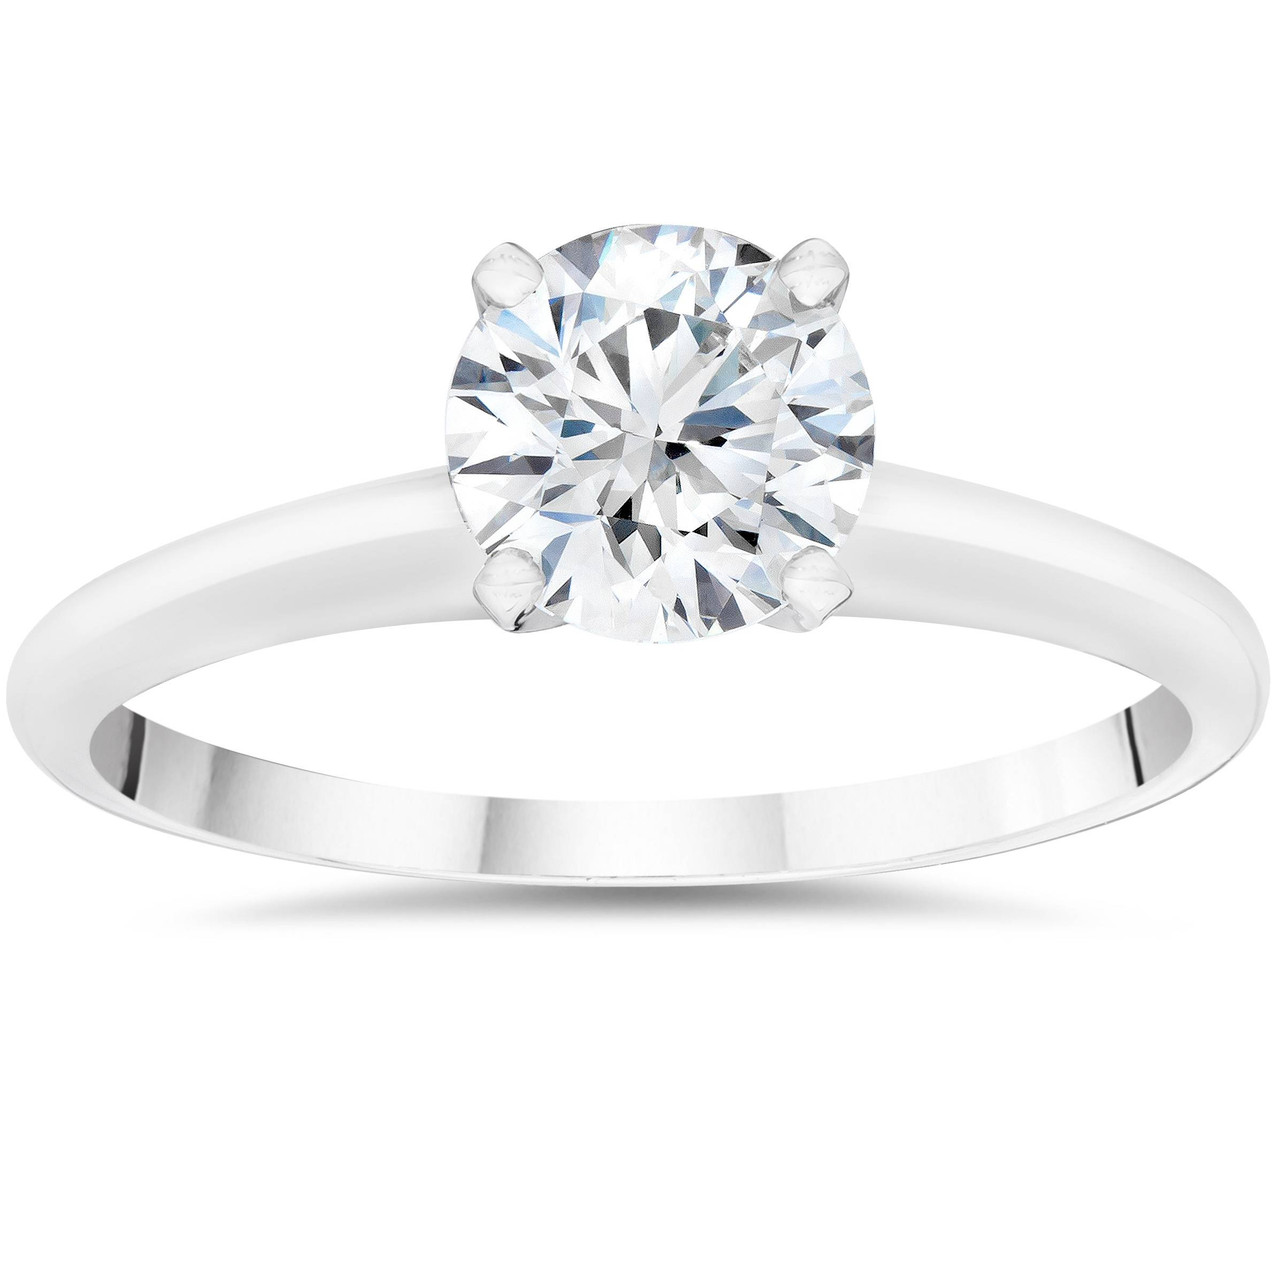 Solitaire Engagement Ring 1.00 Carat Solid 14k Yellow Gold Lab Created Man Made Synthetic Simulated Diamonds VVS1 D color Excellent Cut